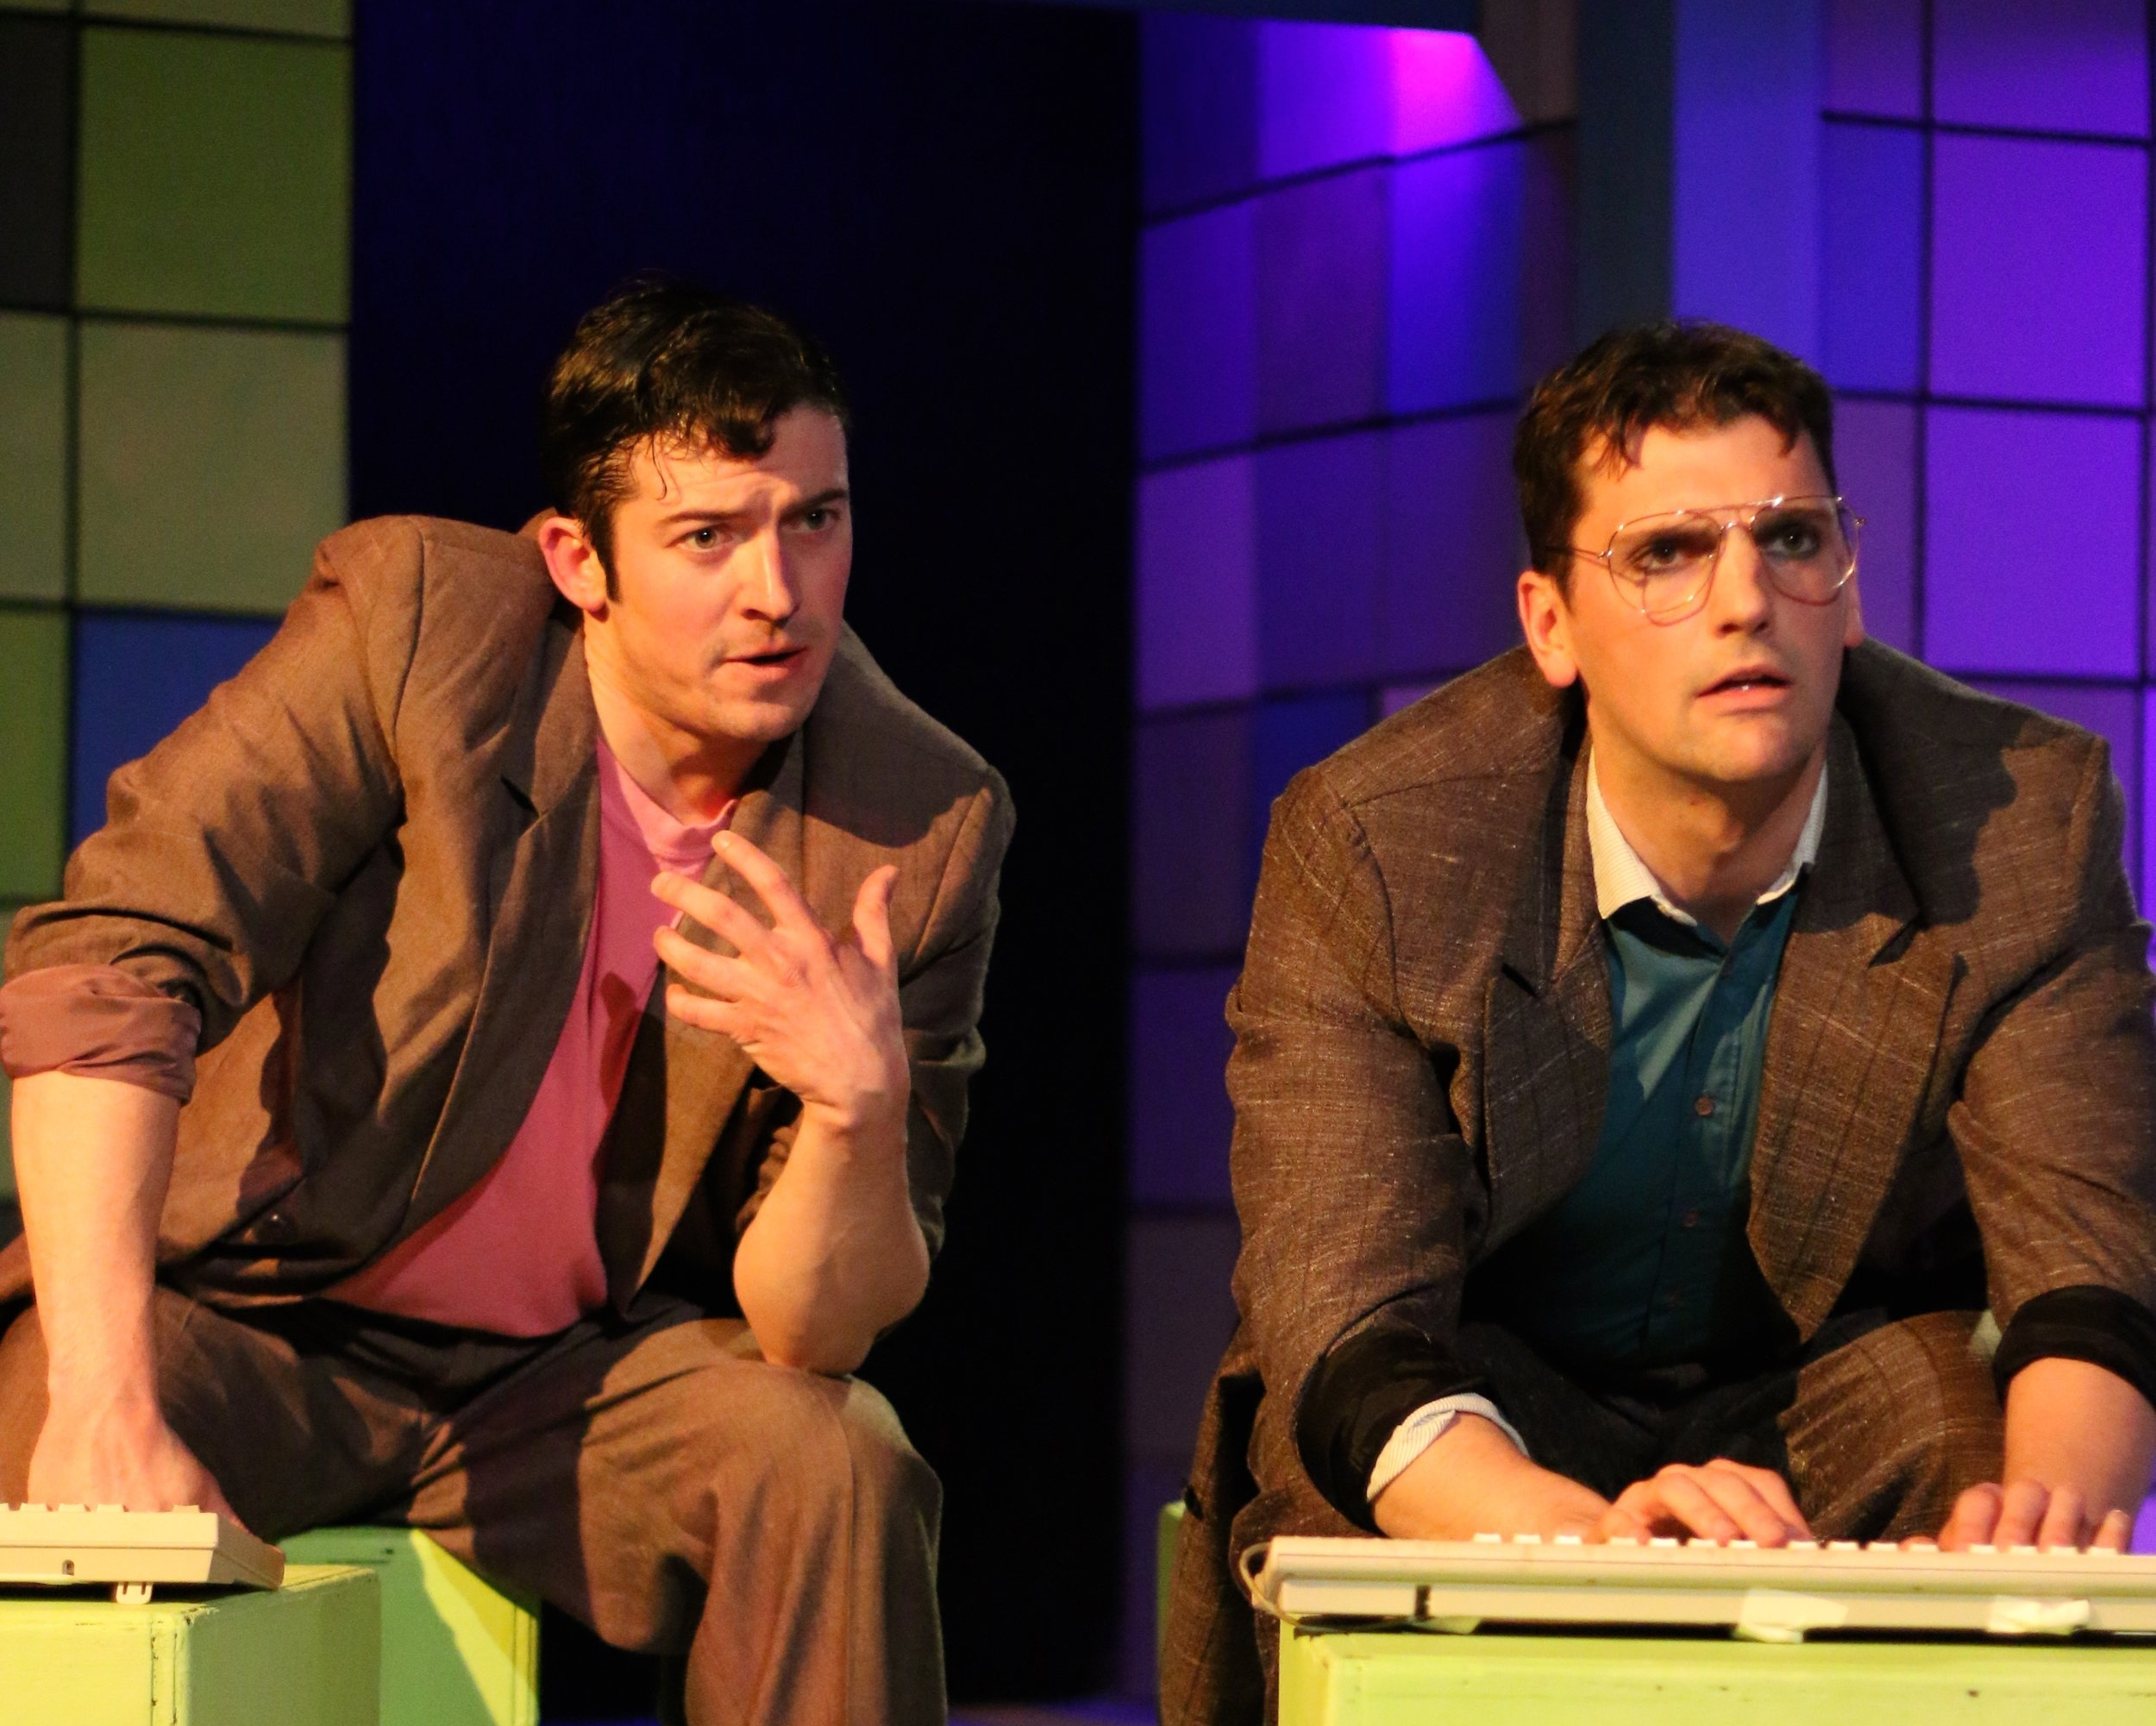 David Coupe and Mike Newquist in  Prelude To A Kiss . Photo by Cody Jolly.